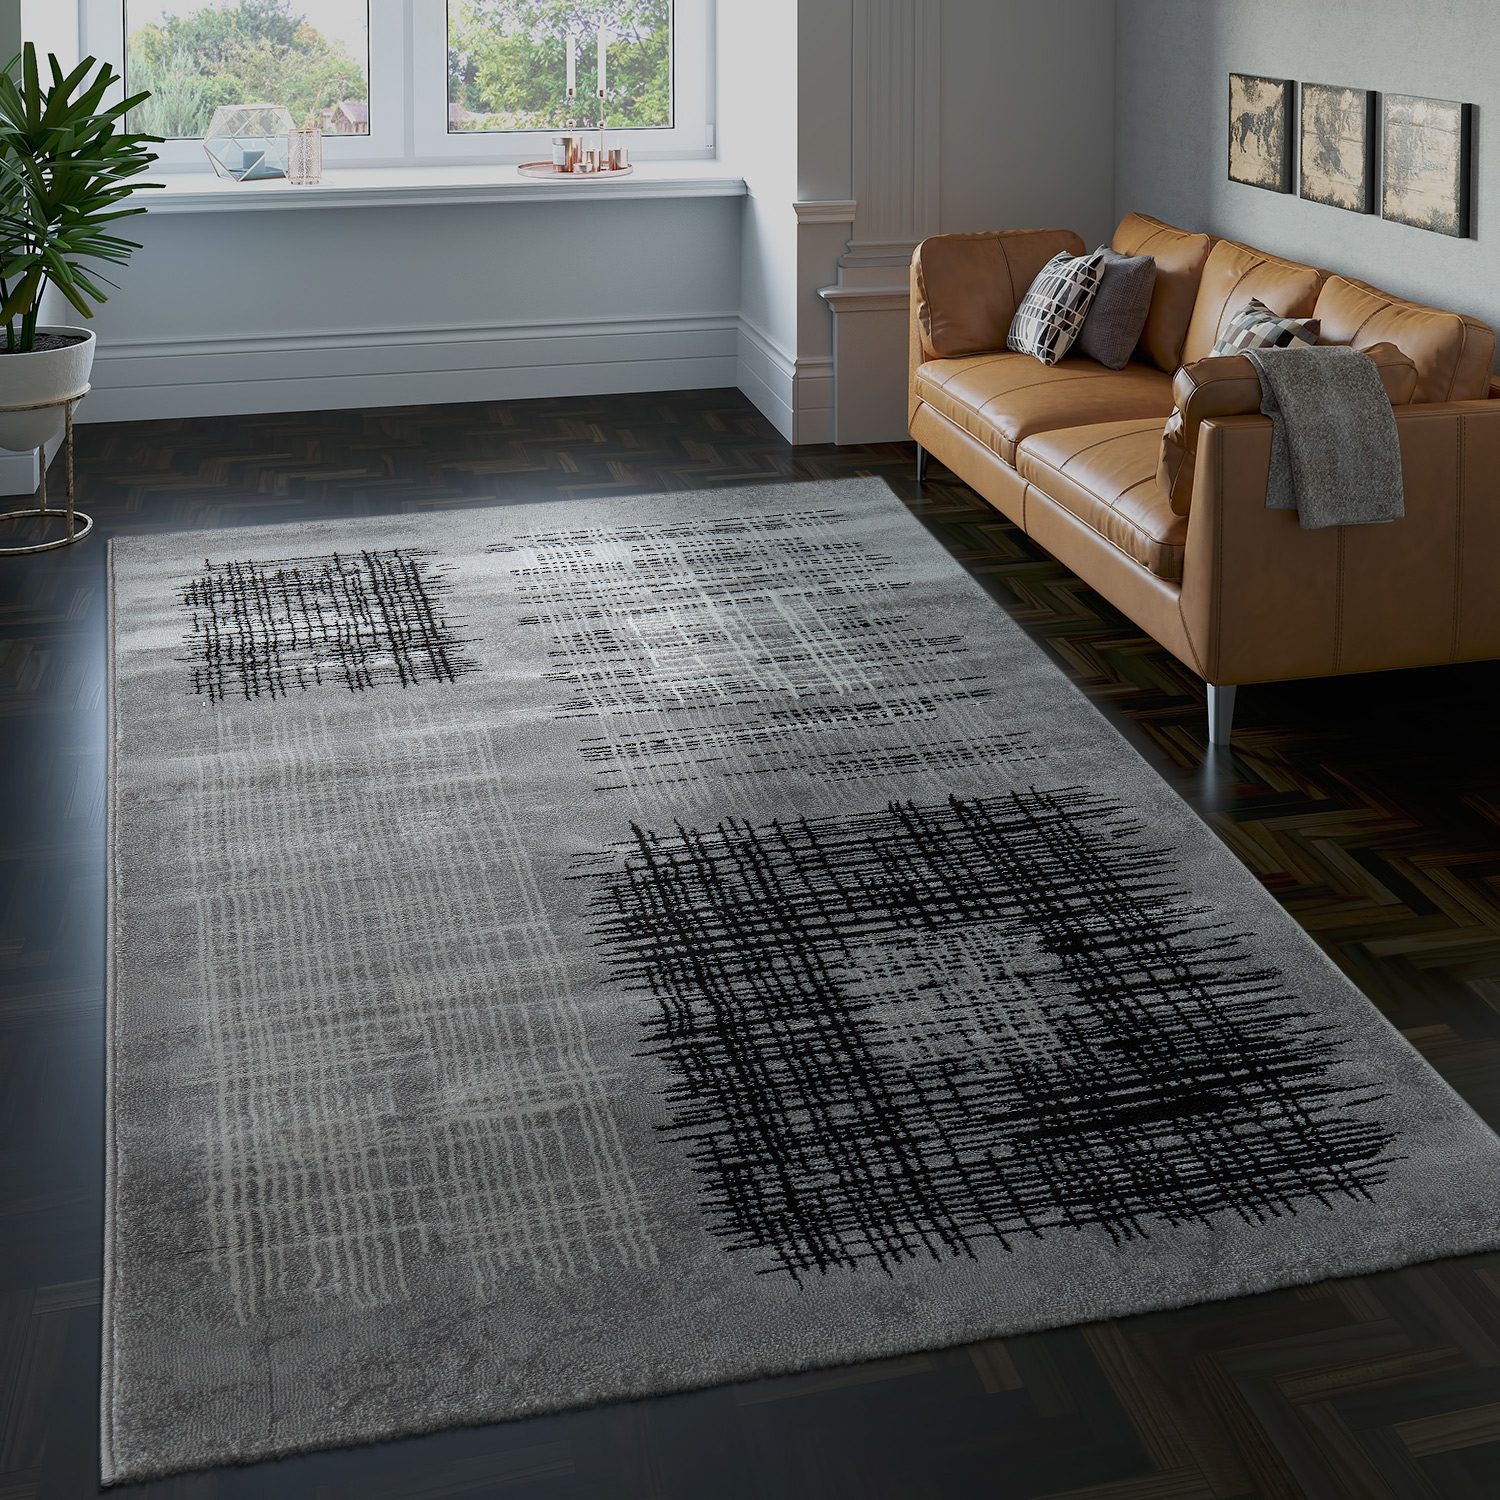 Checked Black Grey Rug: Designer Living Room Rug Checked Pattern Grey